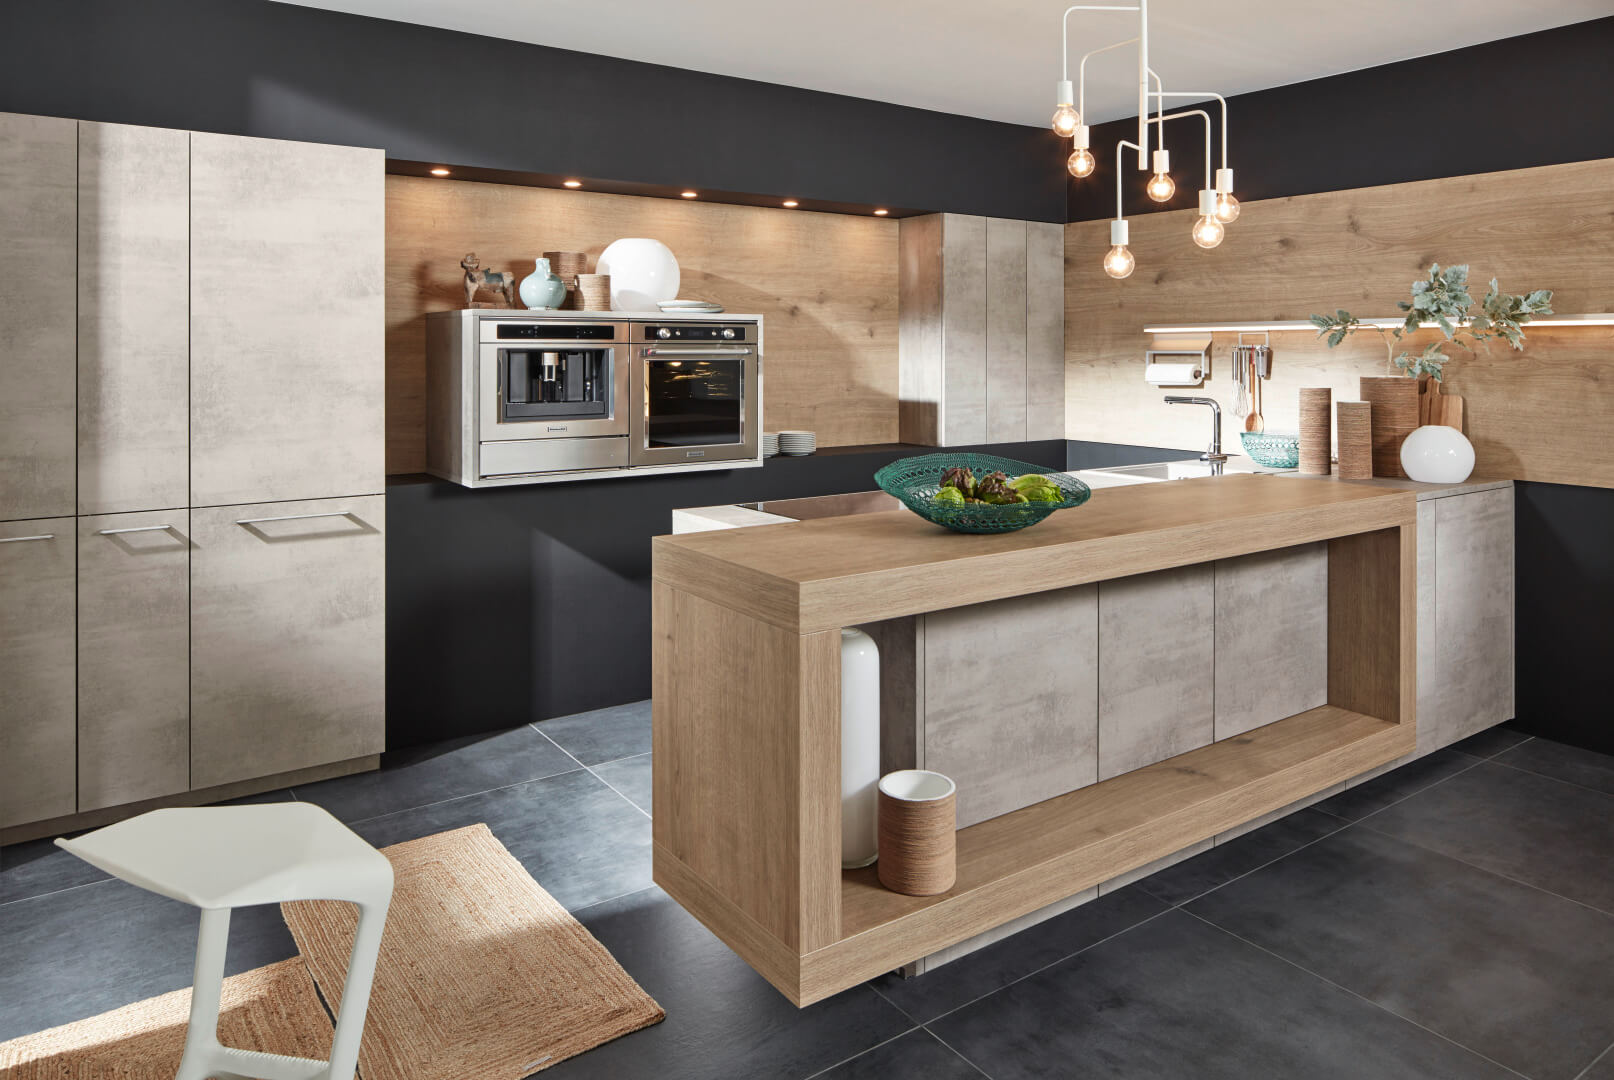 Nolte-Kitchens-Stone-Gallery6